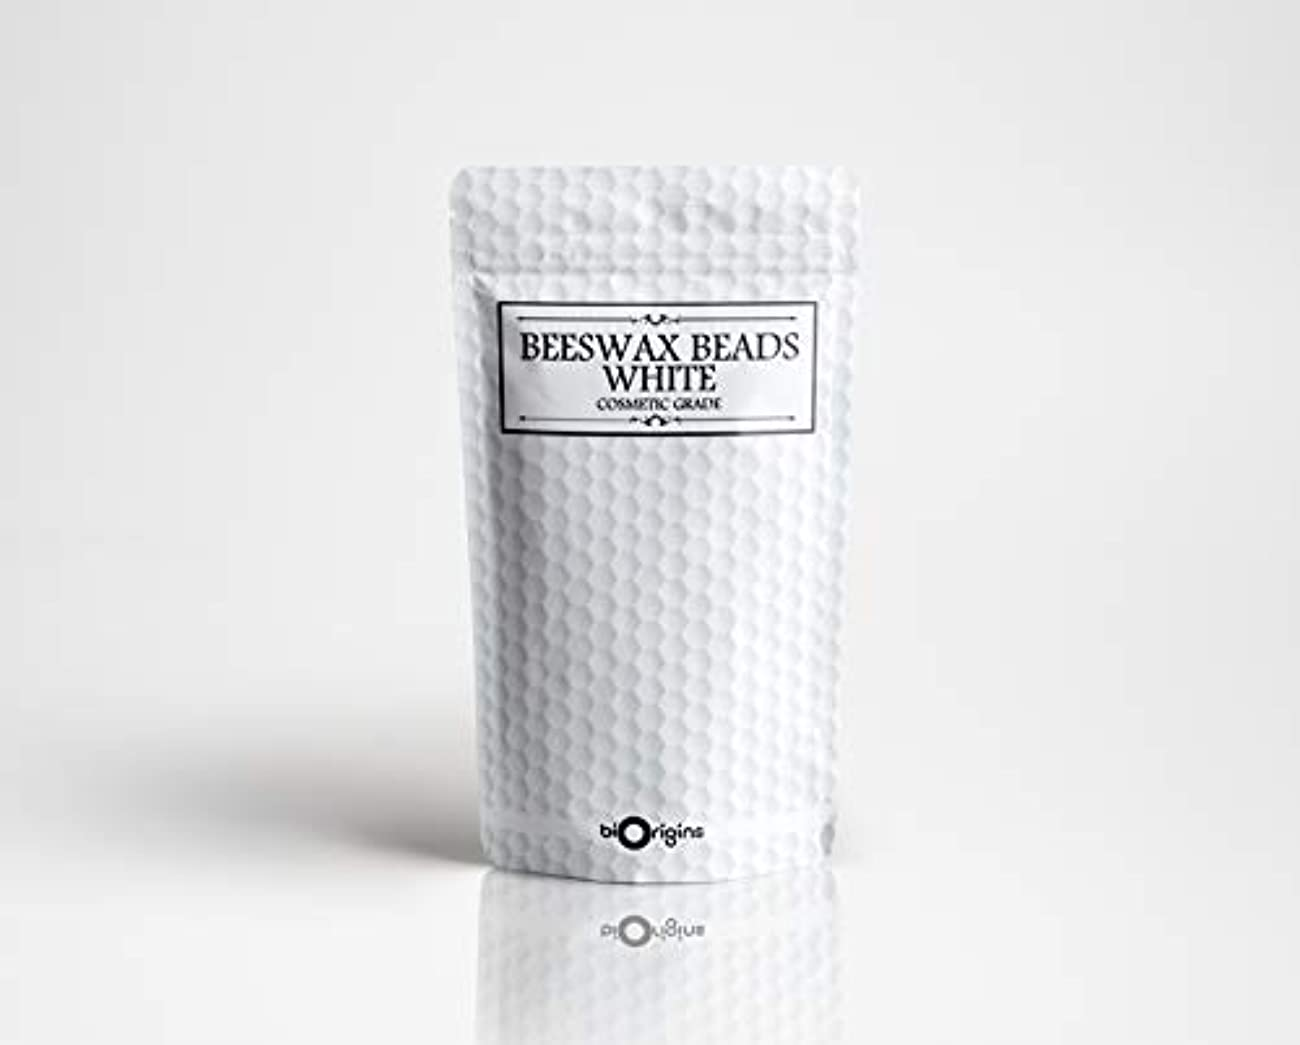 ランタン野球タッチBeeswax Beads White - Cosmetic Grade - 100g